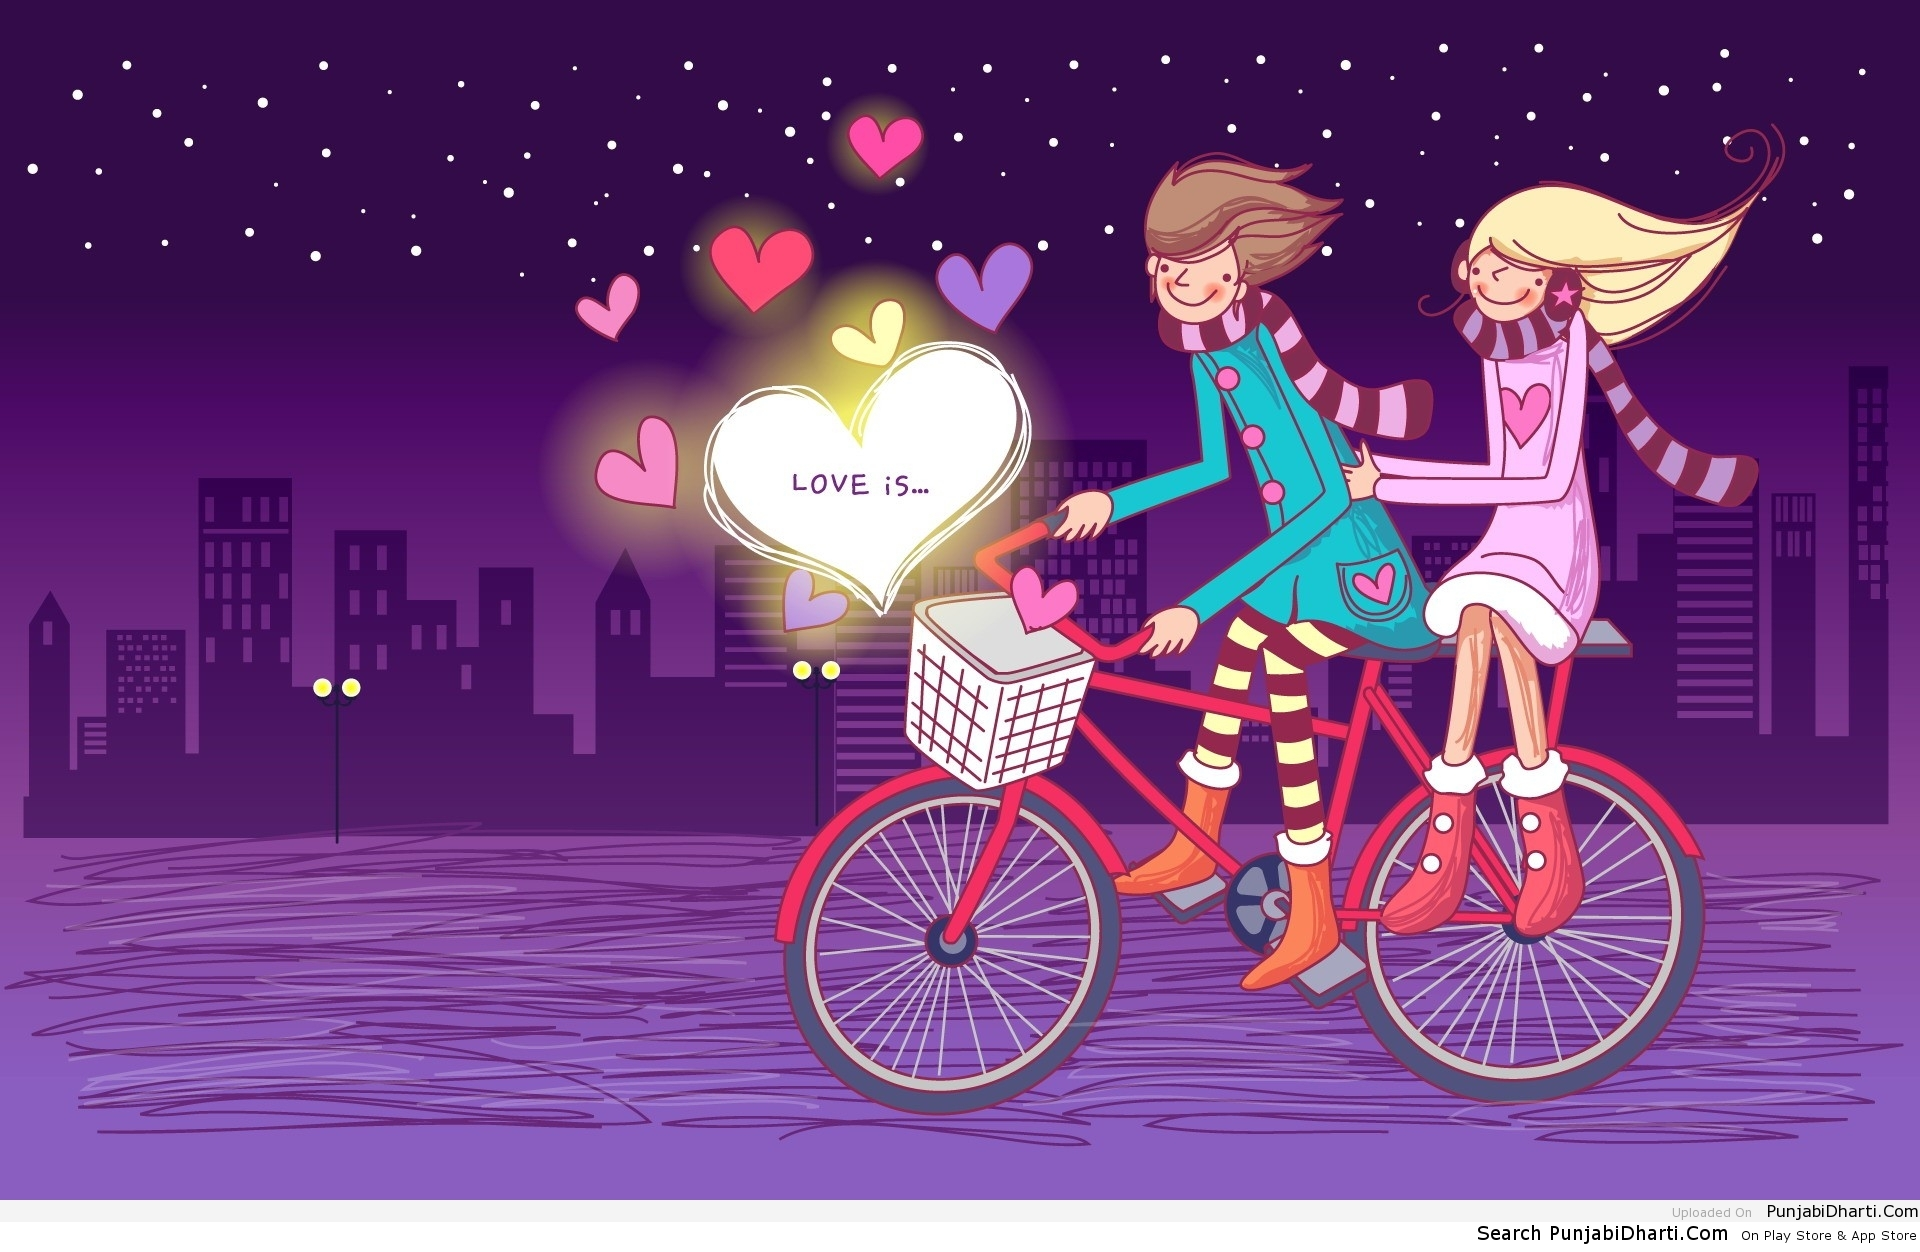 Romantic GraphicsImages For Facebook Whatsapp Twitter